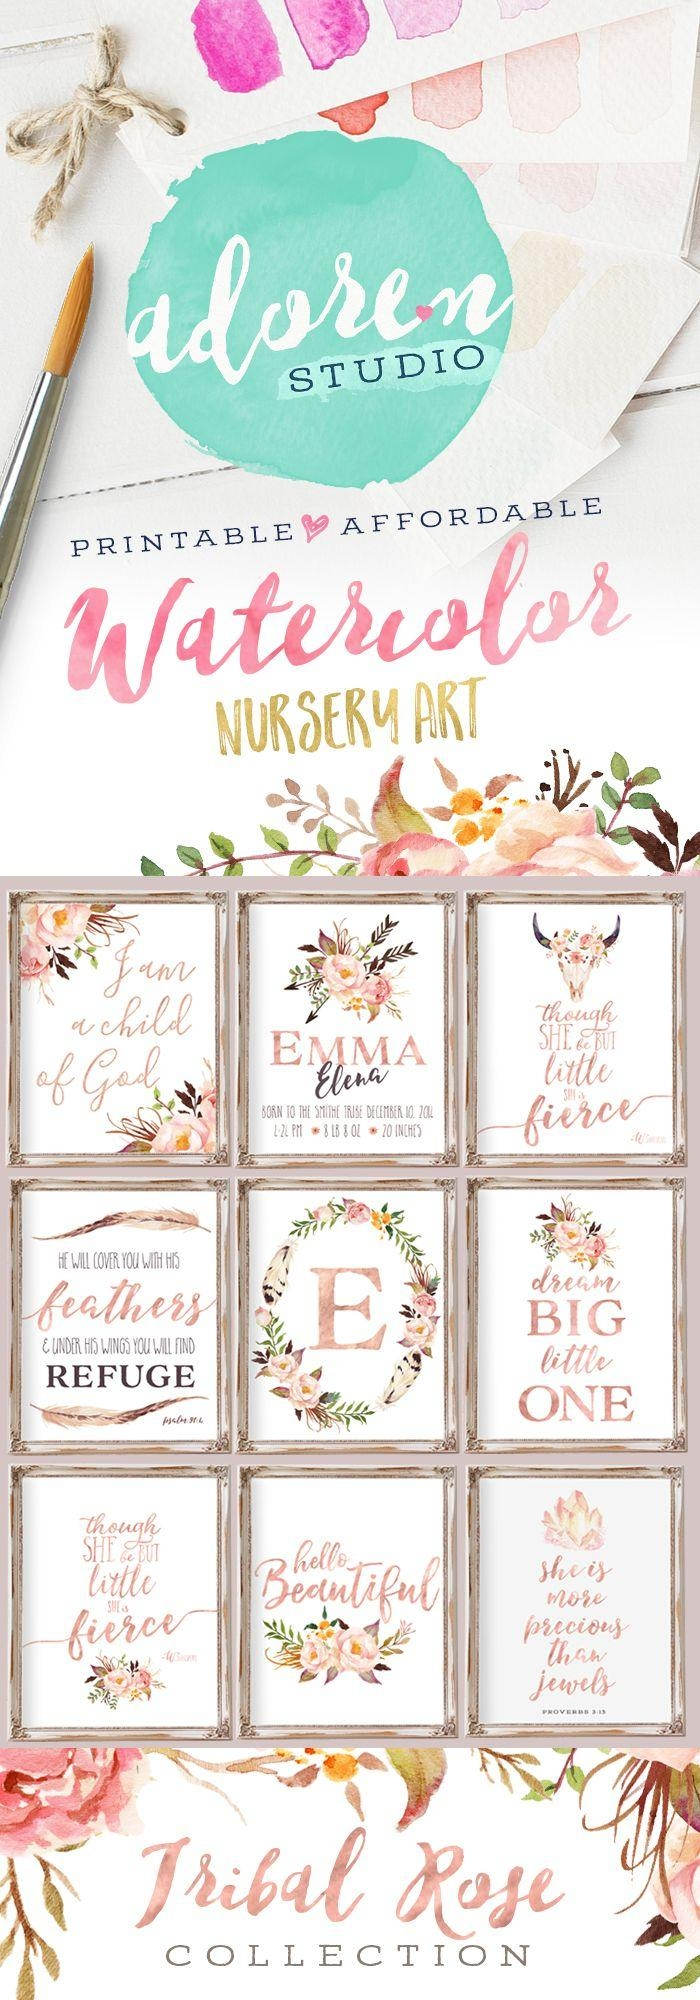 Best 25+ Nursery Wall Art Ideas Only On Pinterest | Baby Nursery Within Baby Wall Art (View 20 of 20)